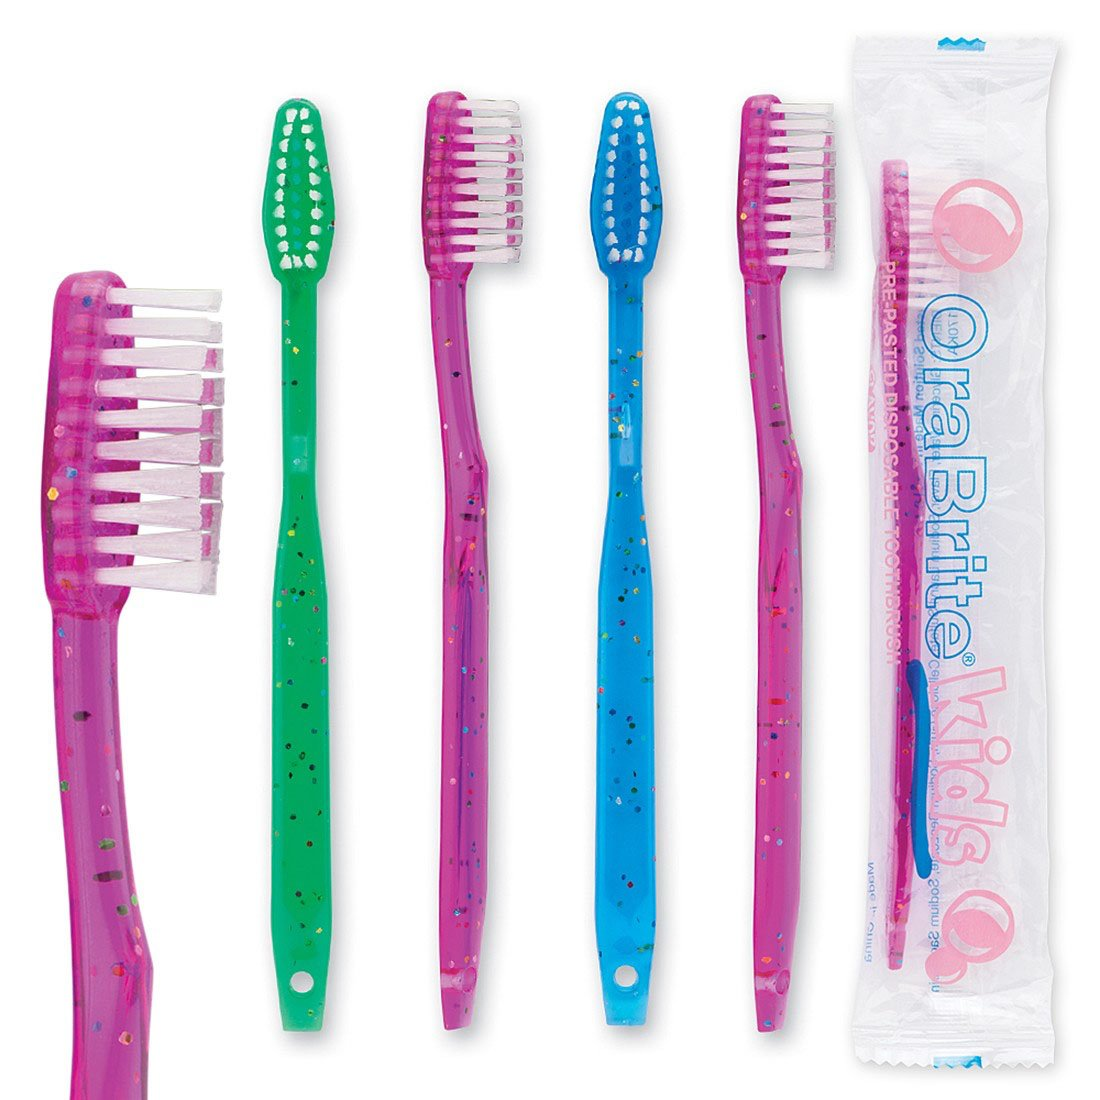 MEGA 144 Pack Kids Disposable Toothbrushes with Paste | Children's Bubblegum Pre-Pasted & Individually Wrapped Toothbrush Bundle | Perfect for School, Camp, Summer Vacation, Daycare (144 Pack) by Bottles N Bags